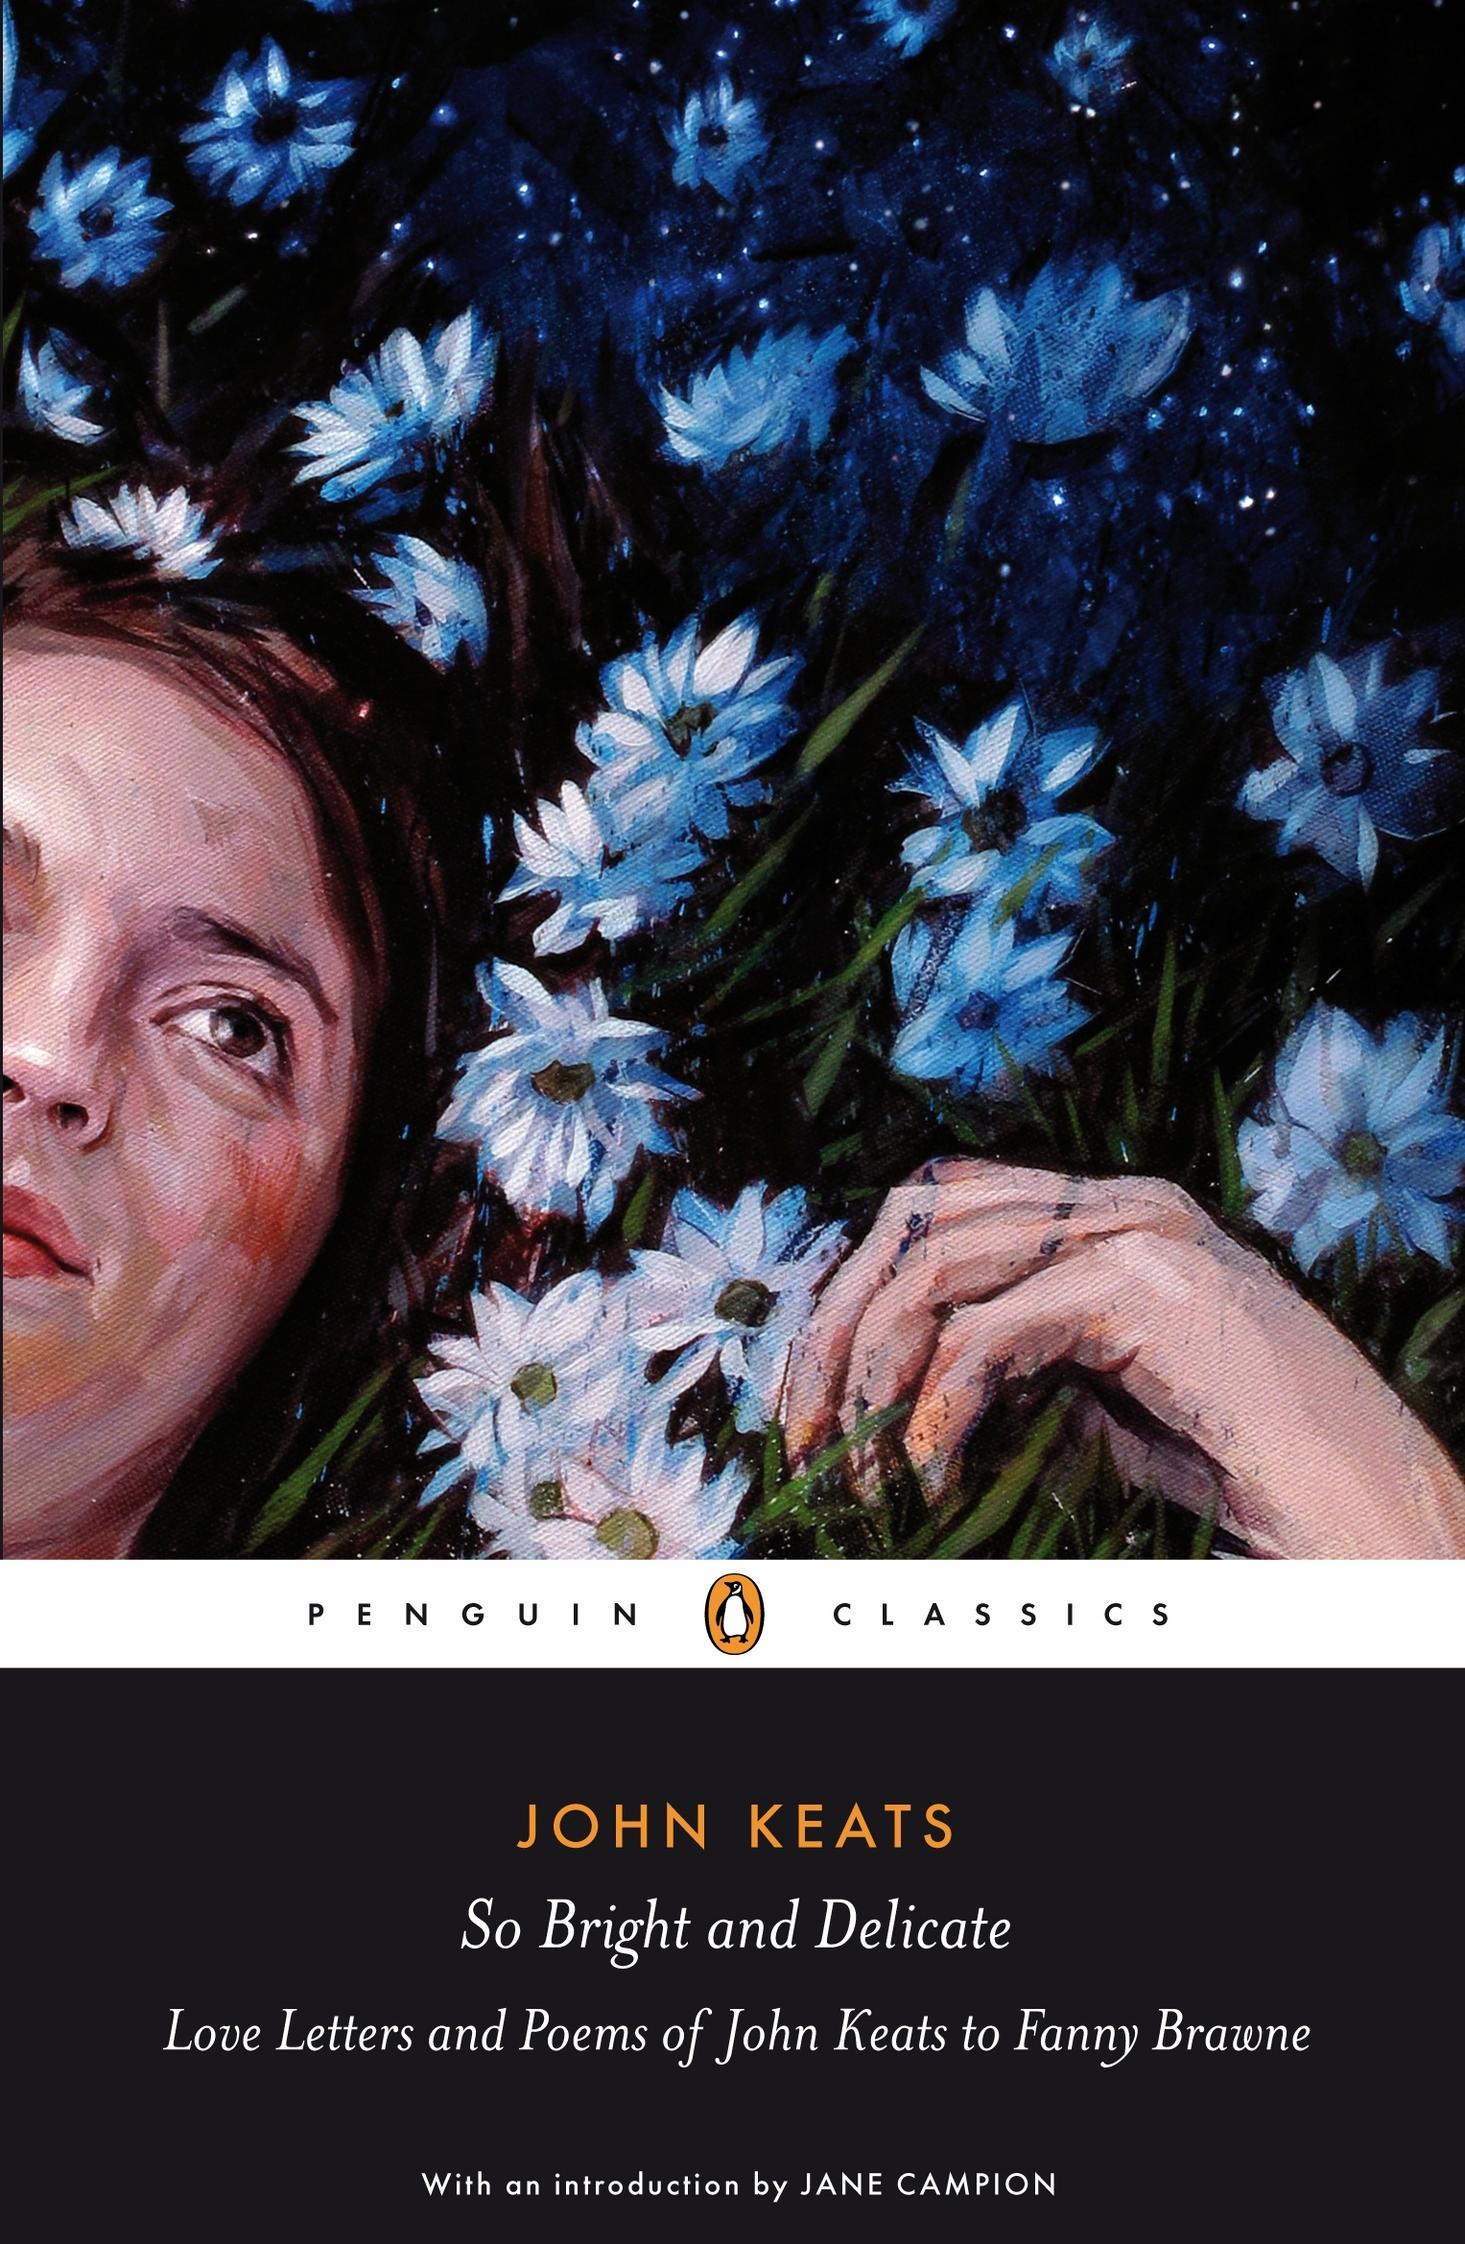 fanny brawne and john keats relationship poems